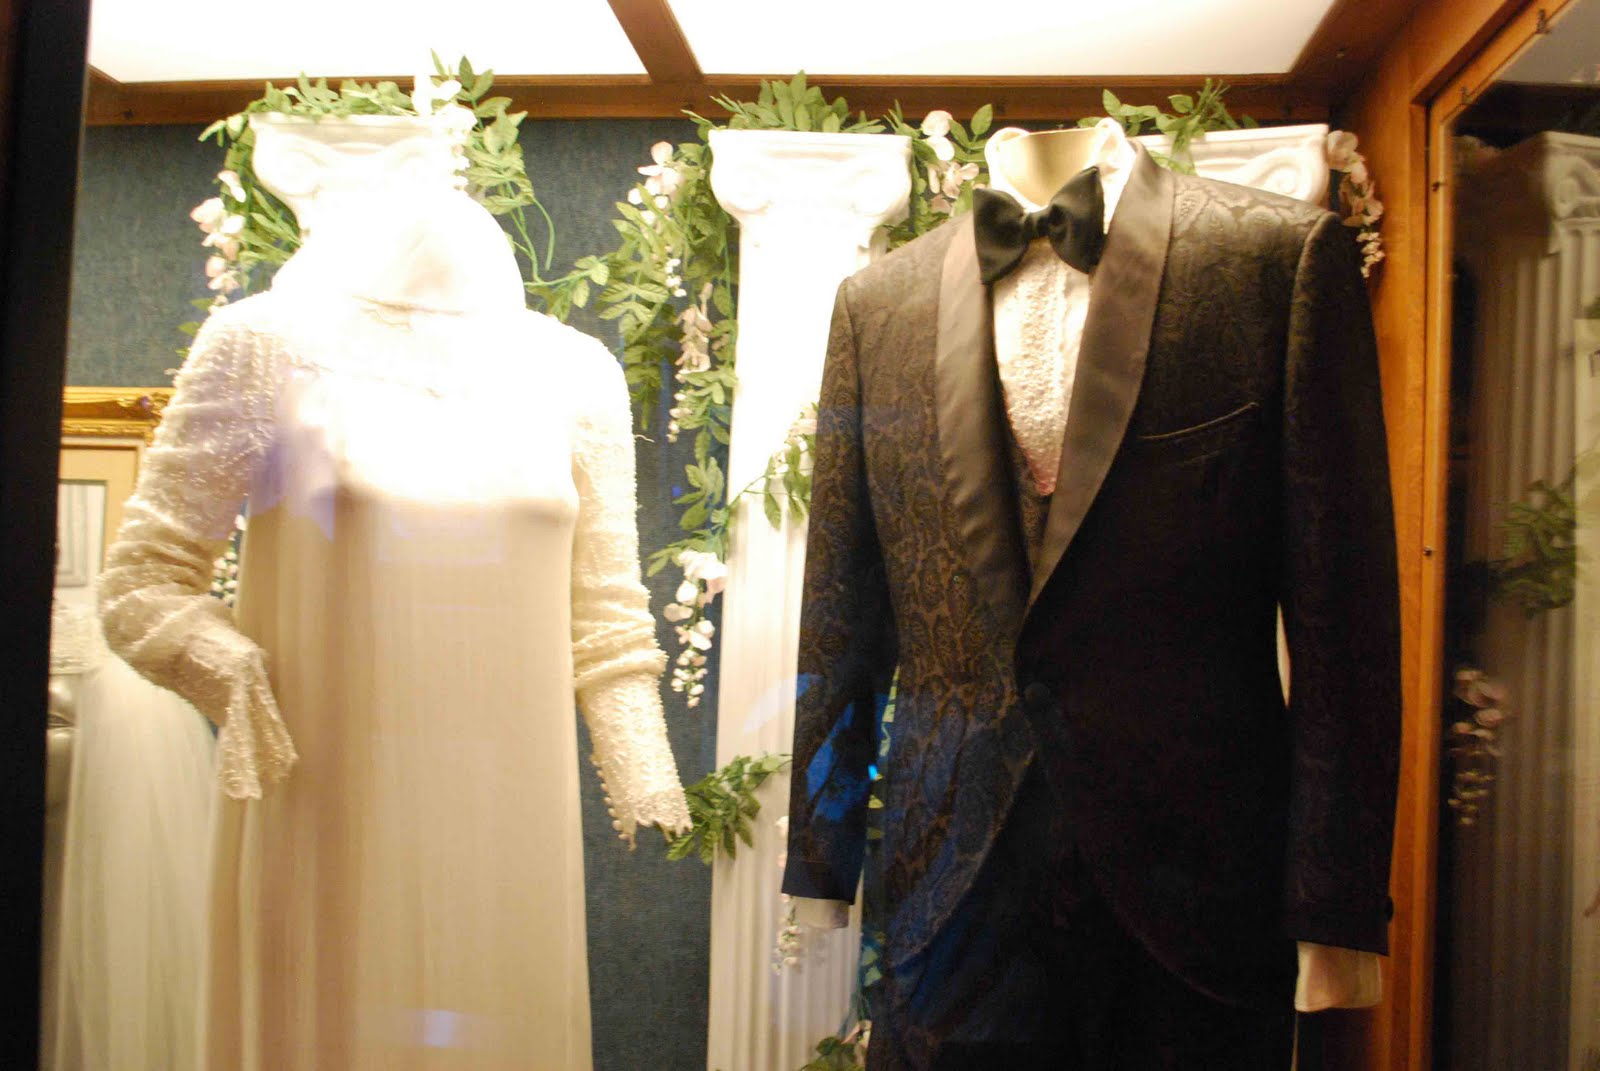 Wedding Outfits Of Elvis And Priscilla Presley